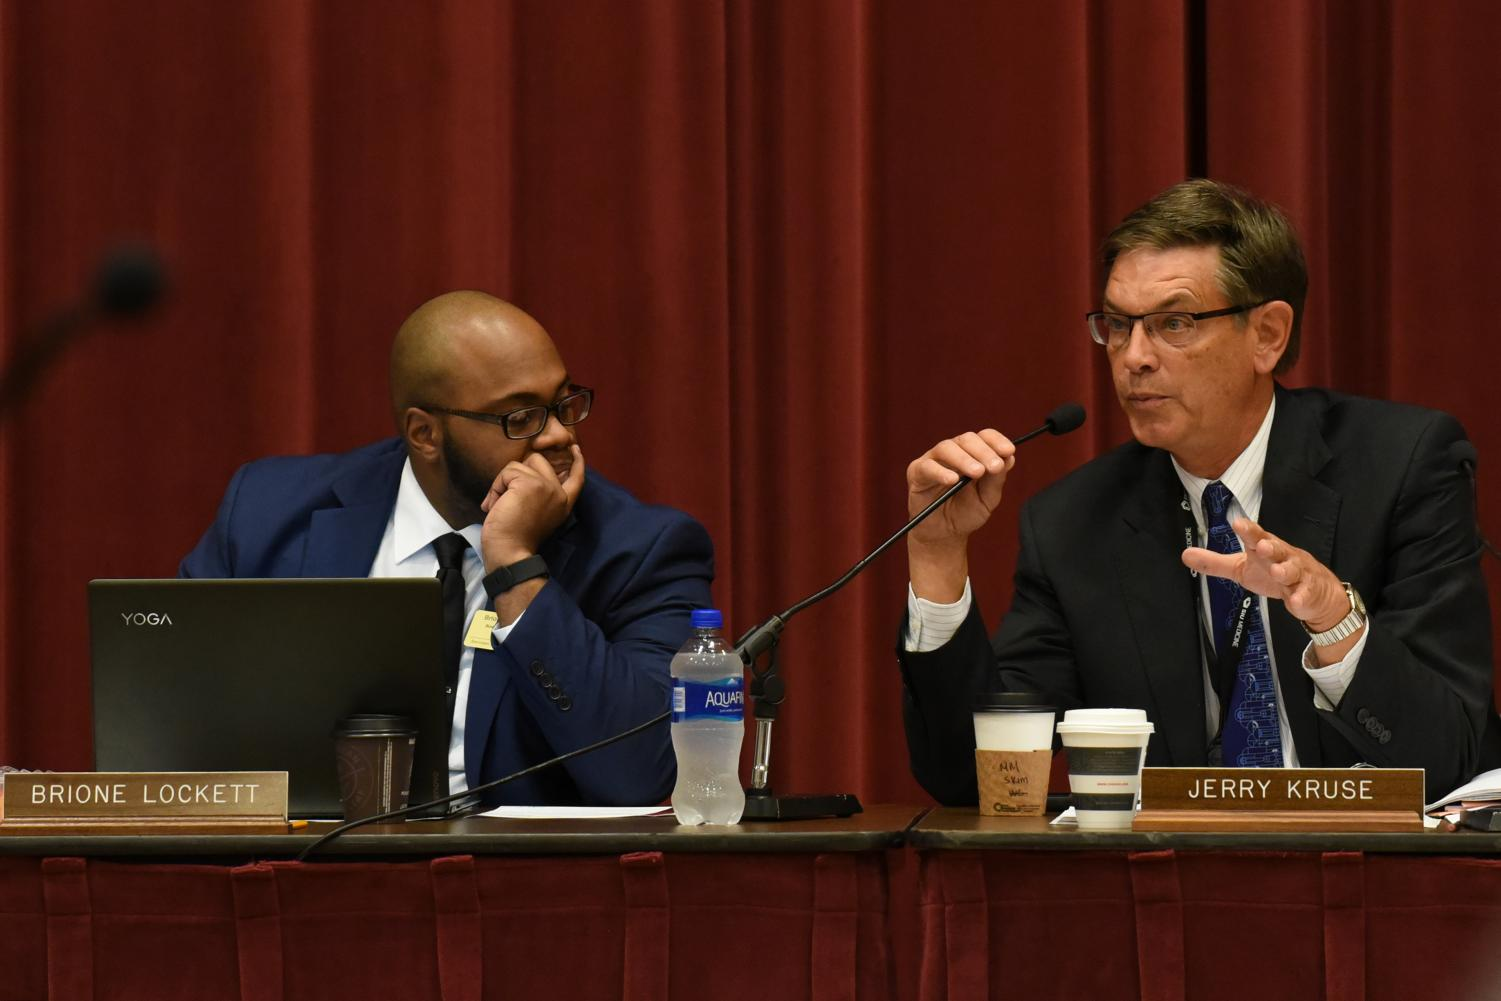 SIU School of Medicine Dean and Provost Jerry Kruse responds to a presentation, next to SIUC Student Trustee Brione Lockett at the SIU Board of Trustees meeting Thursday, Sept. 13, 2018, in the Meridian Ballroom at SIUE. (Jeremy Brown   @JeremyBrown_DE)